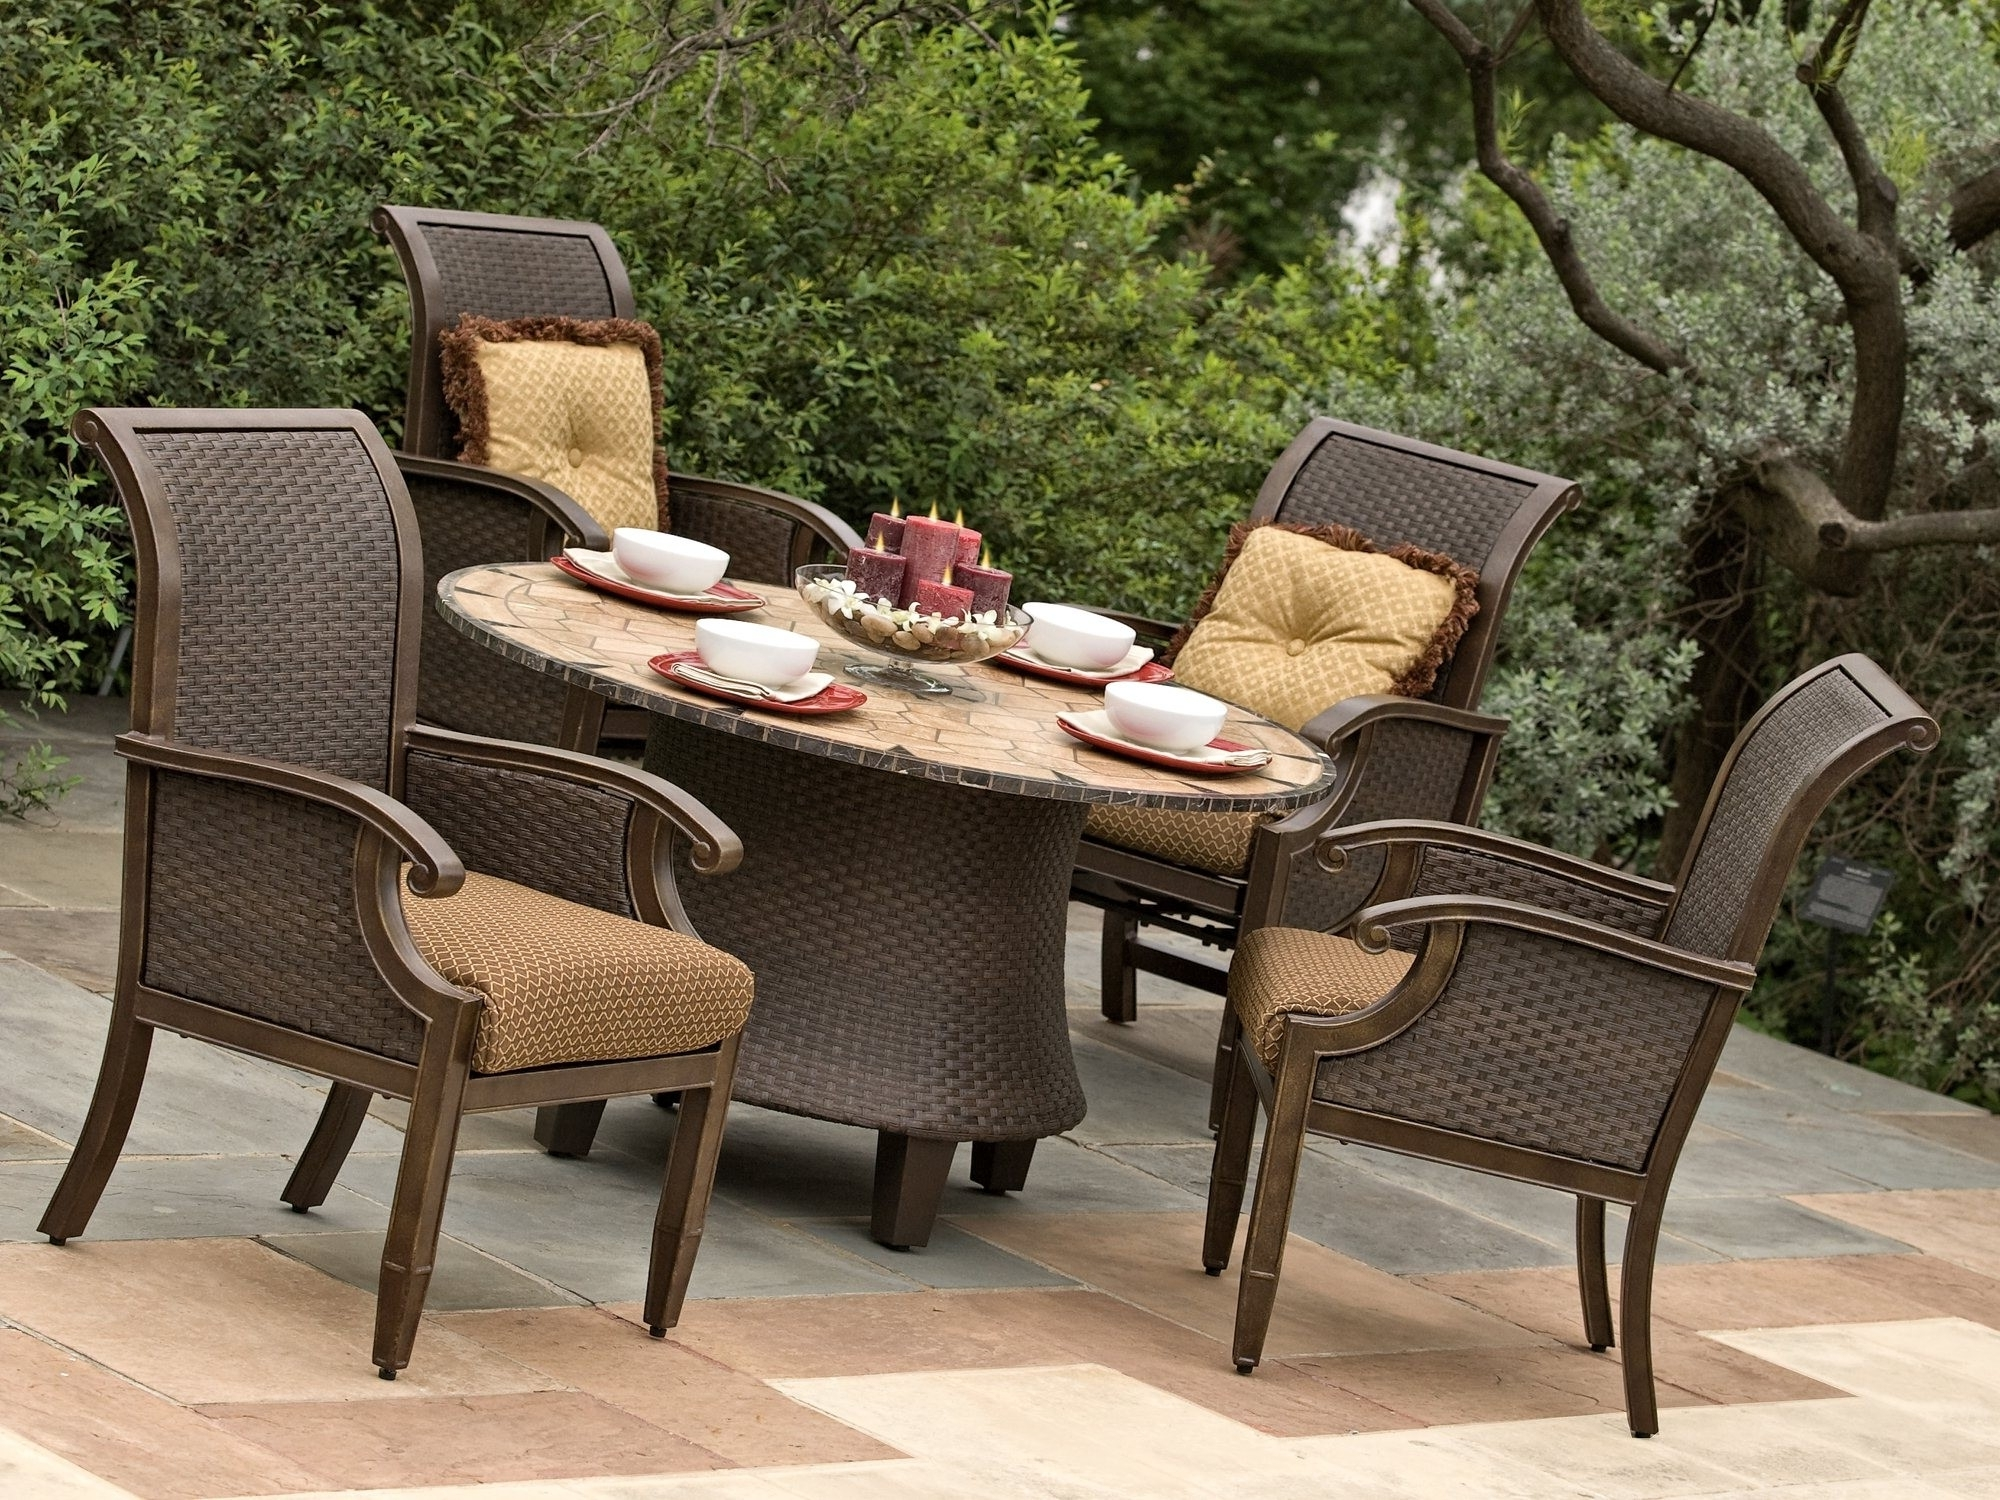 Marvelous Outdoor Patio Furniture 27 Kor Relaxed Location Dining 923 In Most Current Patio Conversation Dining Sets (View 15 of 20)